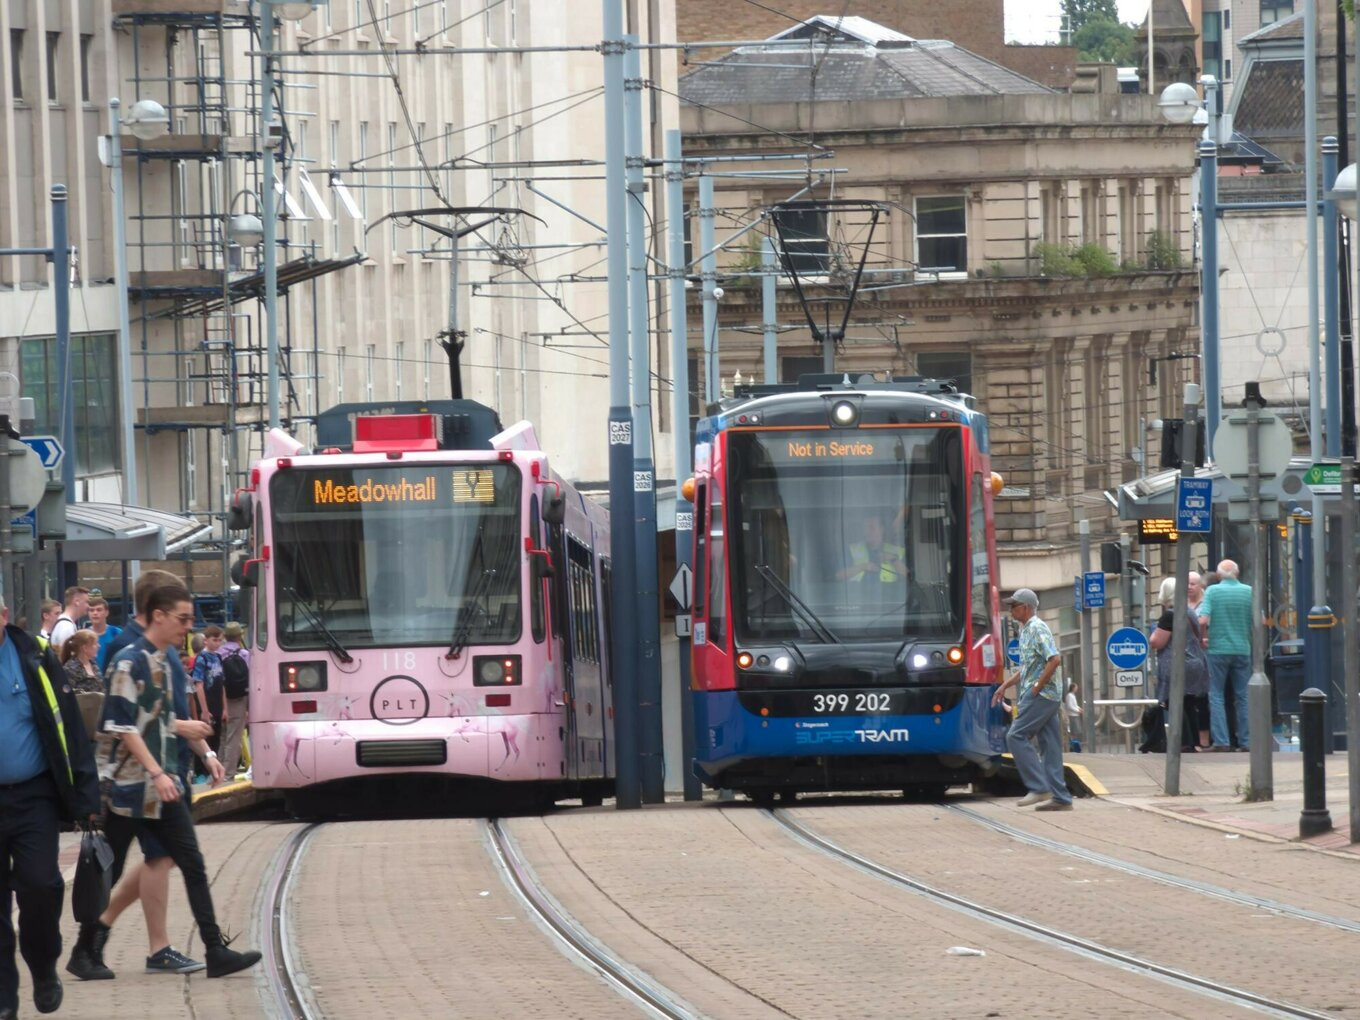 Two trams in Sheffield city centre